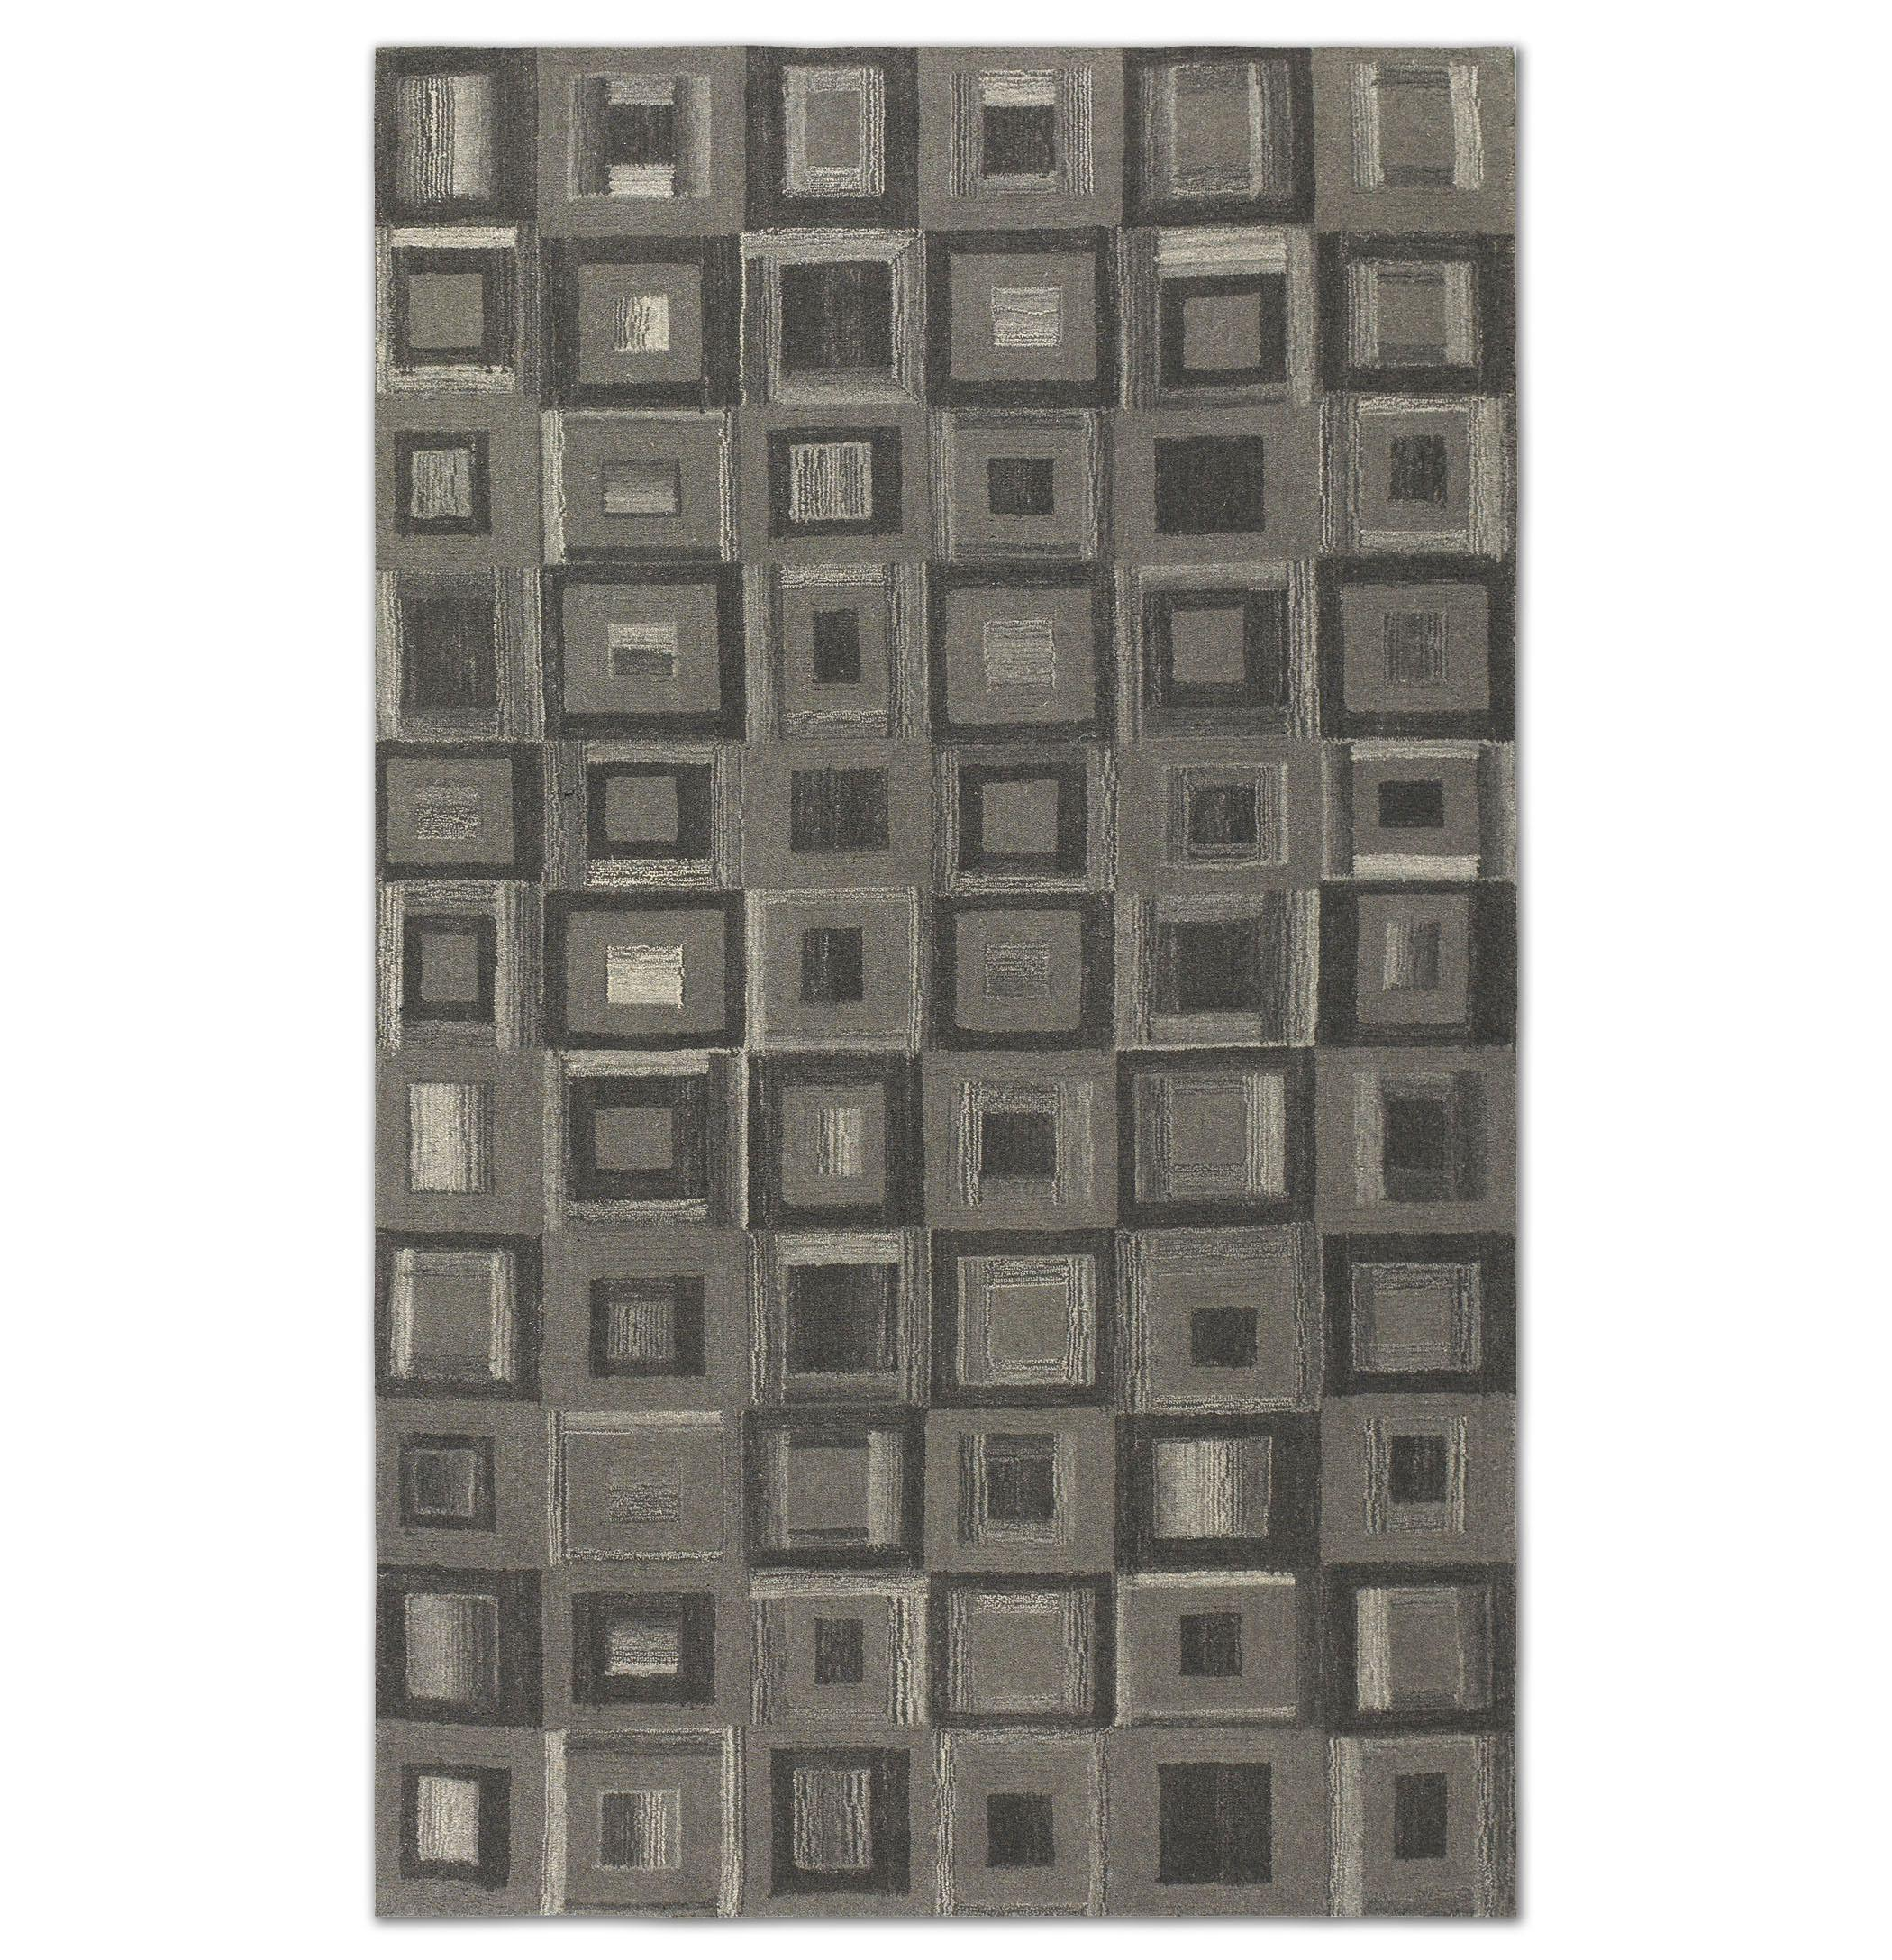 Uttermost Rugs Matrice 8 X 10 Rug - Gray - Item Number: 73054-8